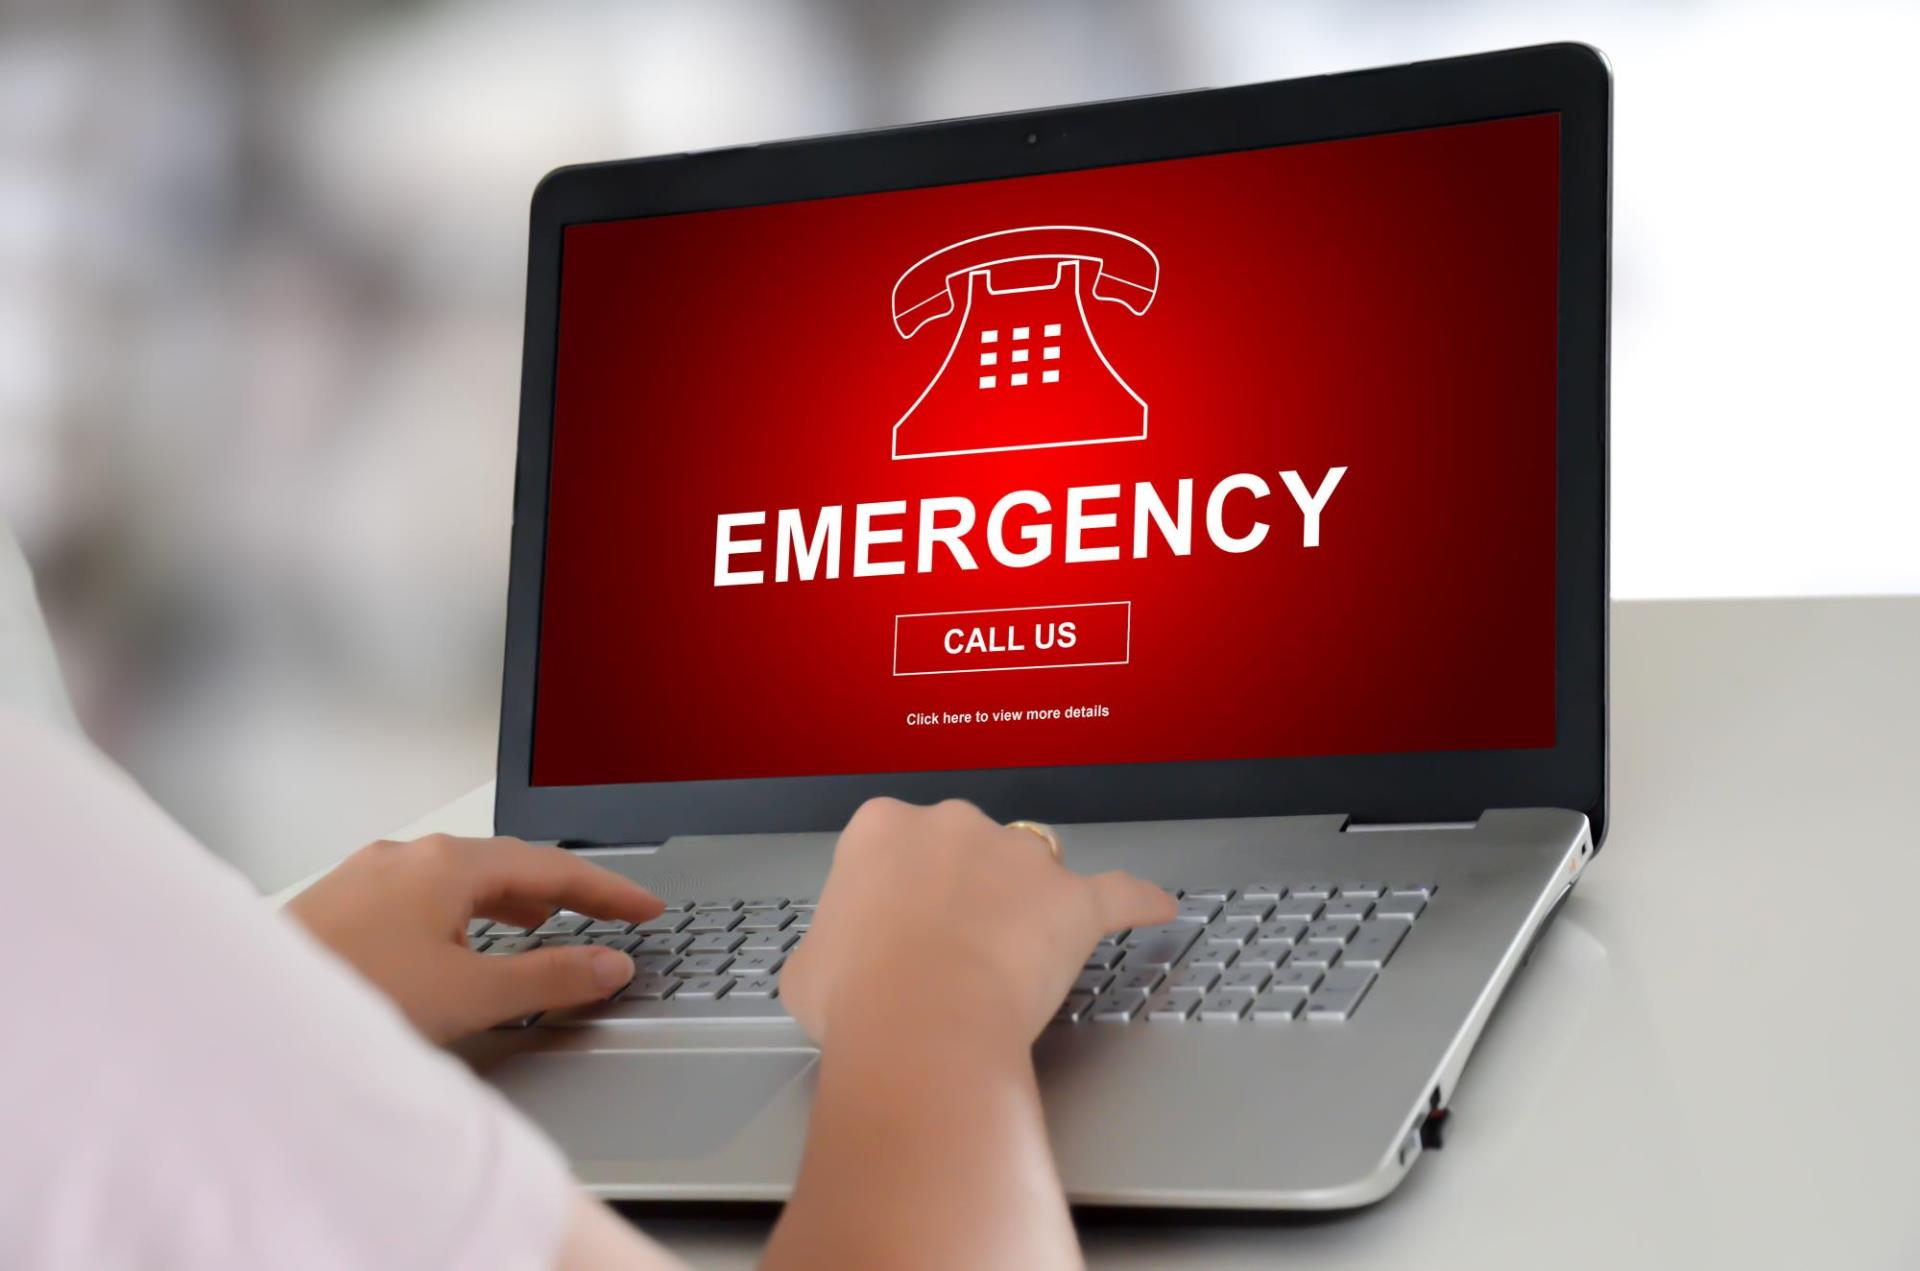 Hands typing on laptop with Emergency displayed on screen